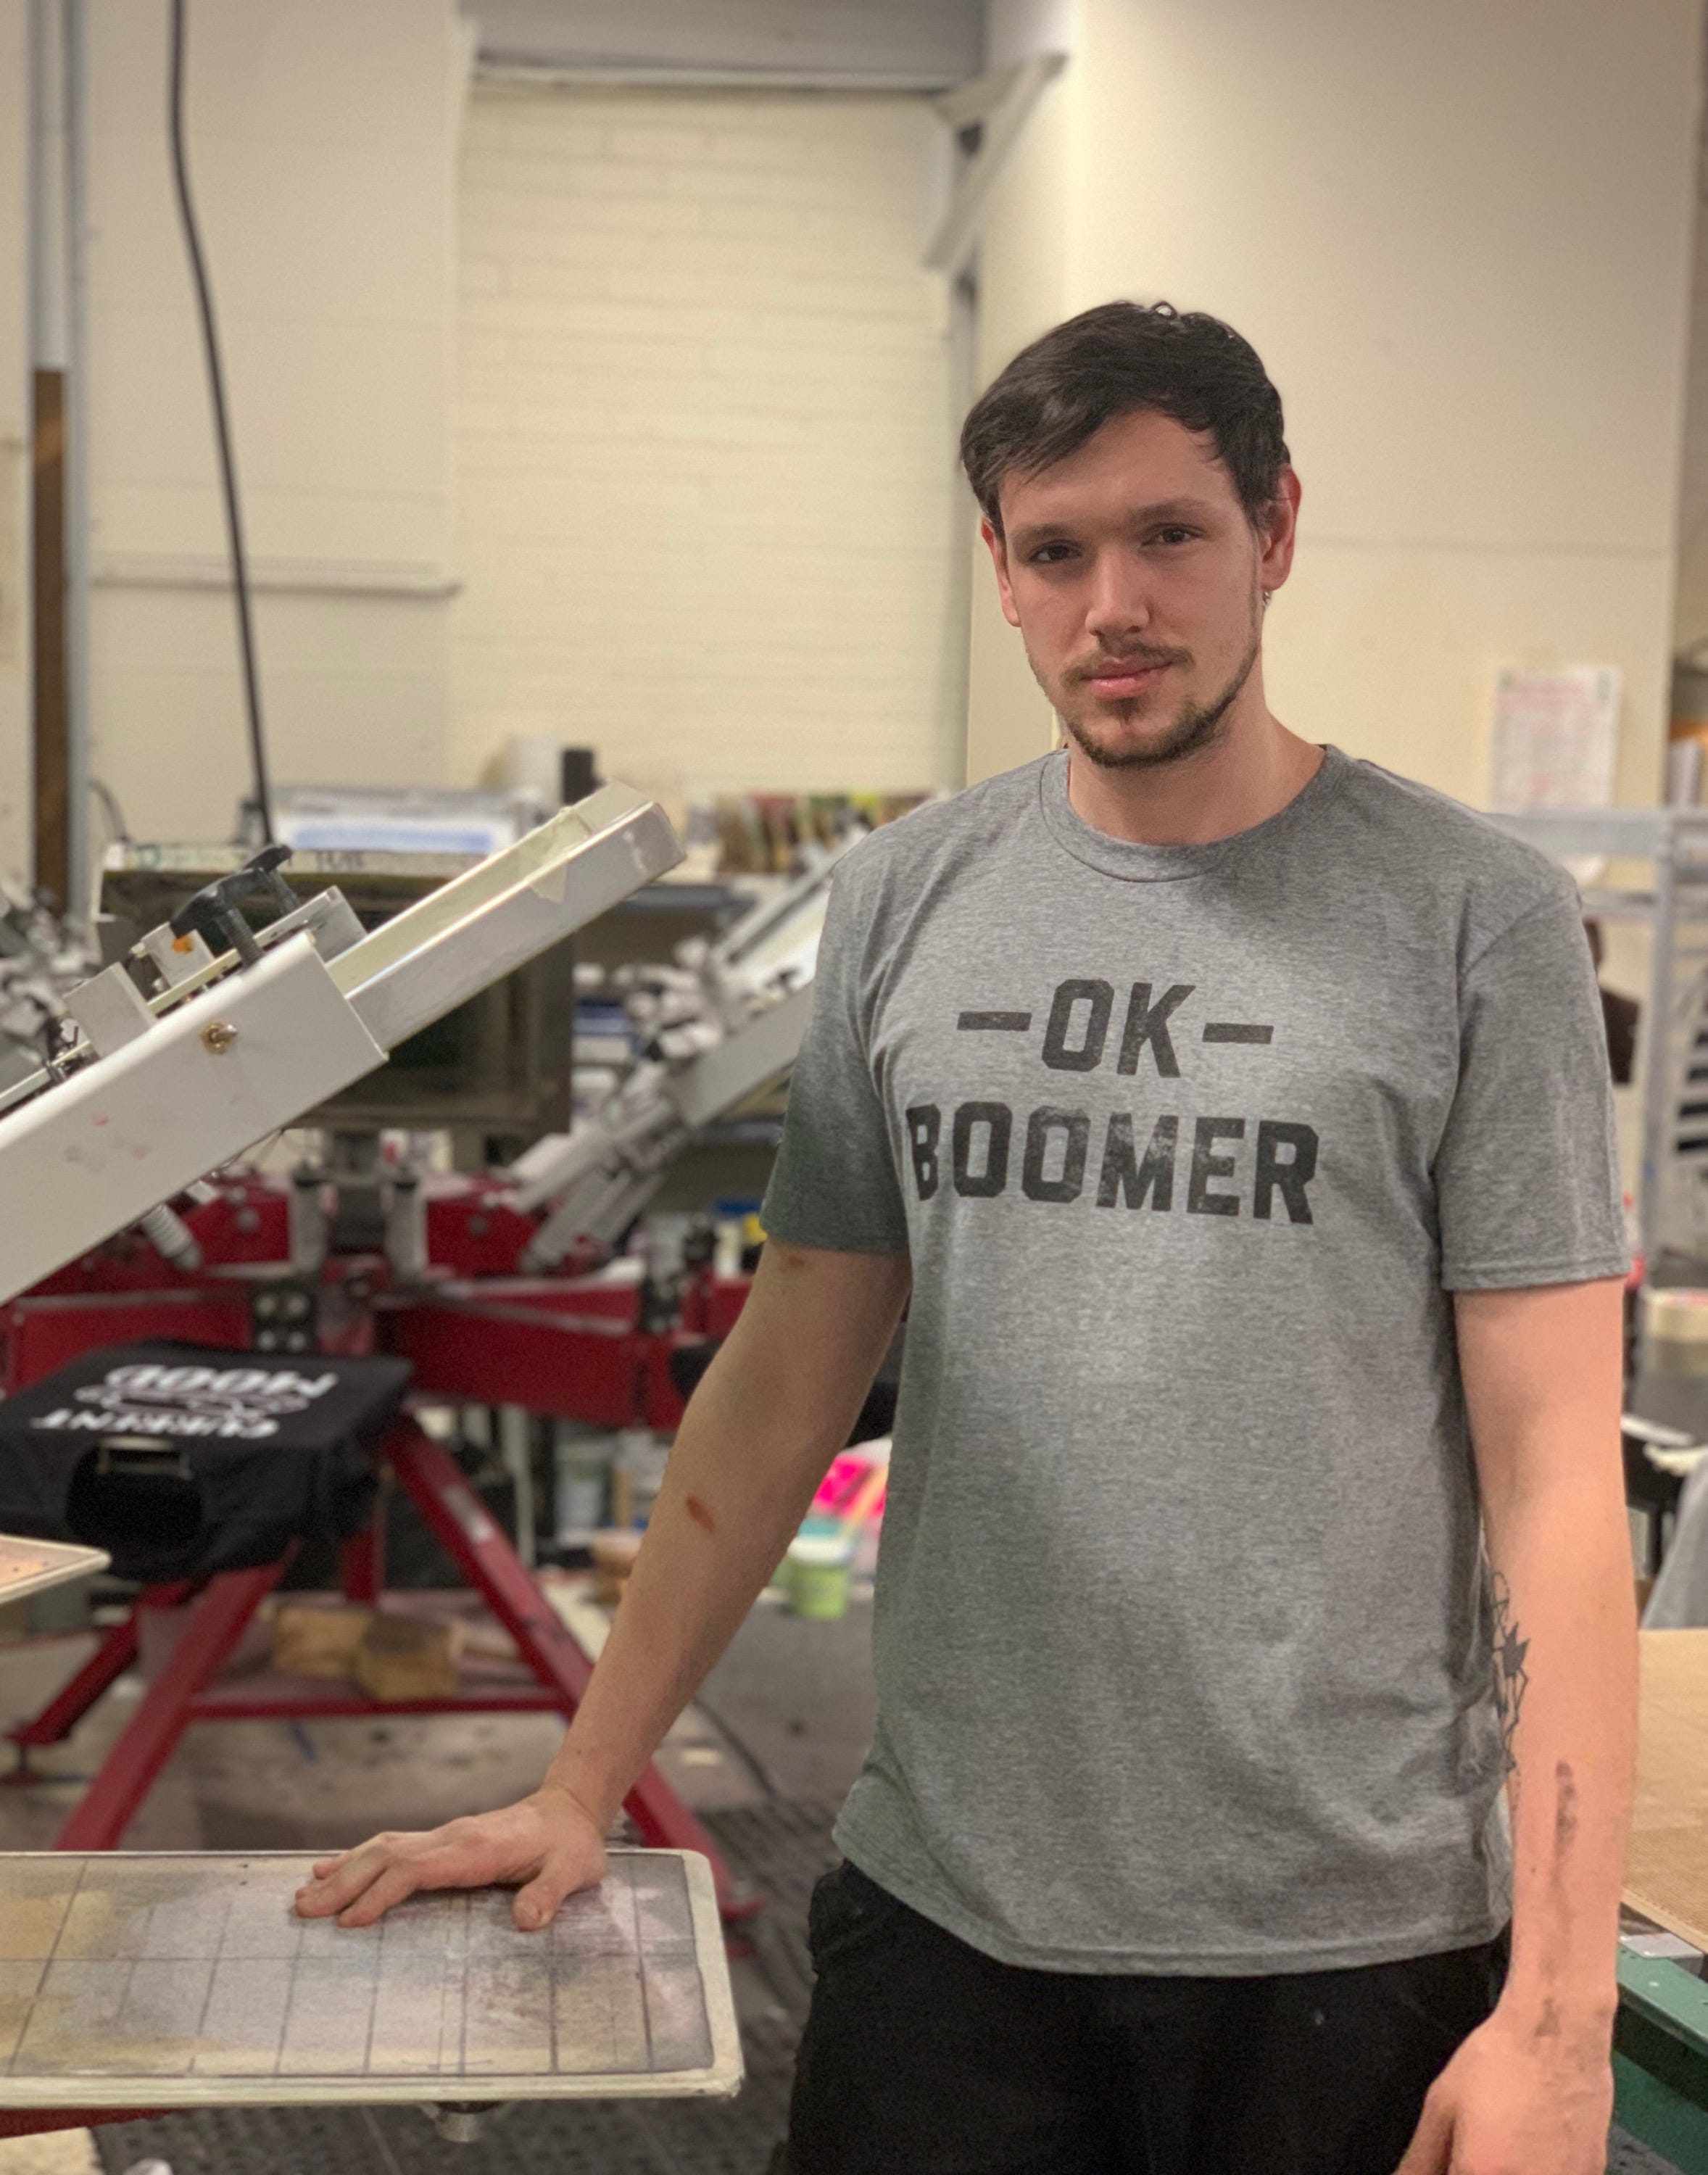 OK Boomer: Rochester T-shirt company makes up for Lonsberry n-word tweet with new shirt